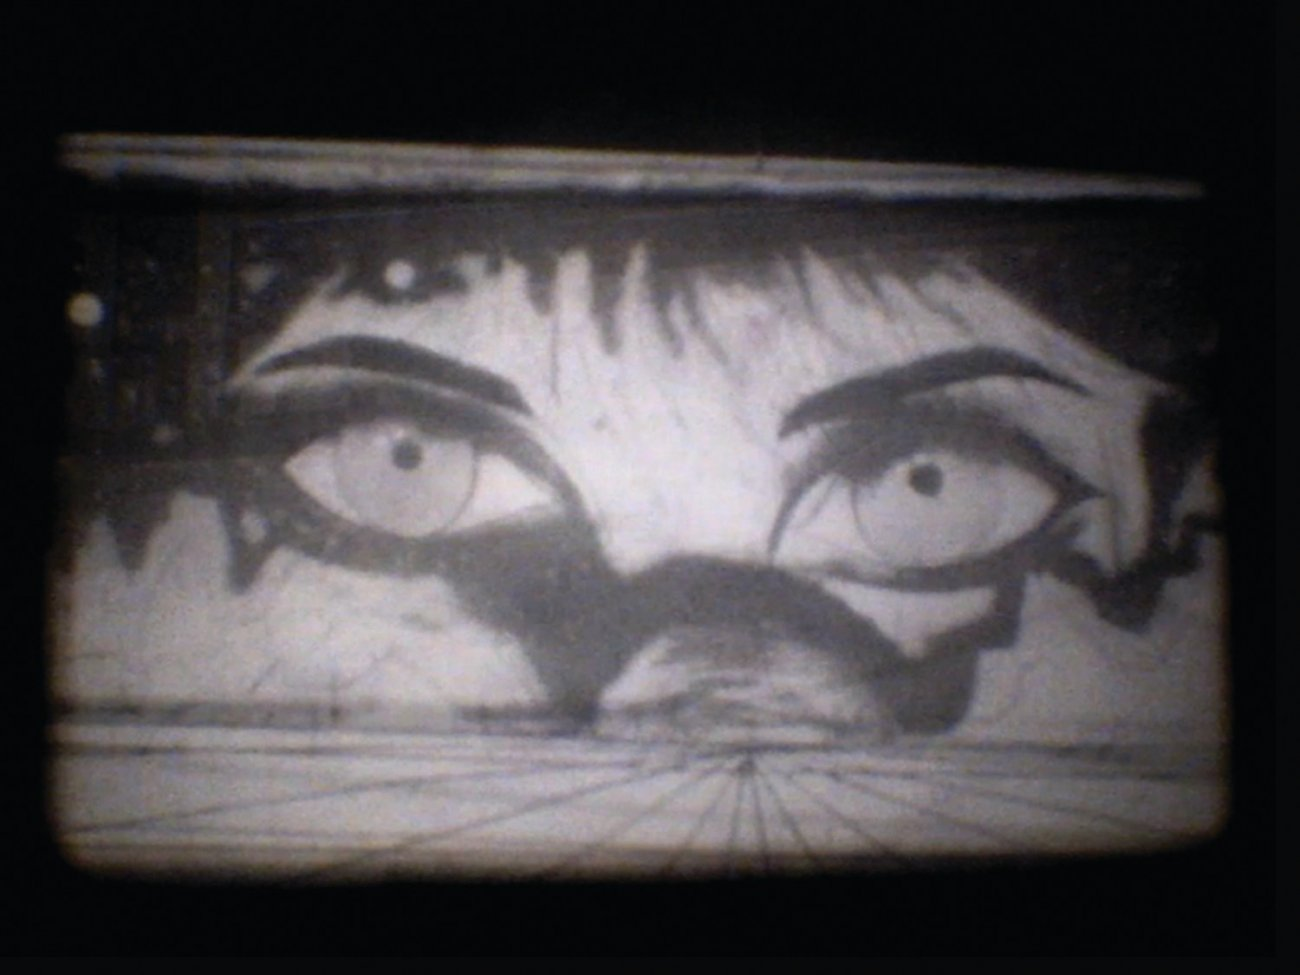 Black and white film still showing animated eyes